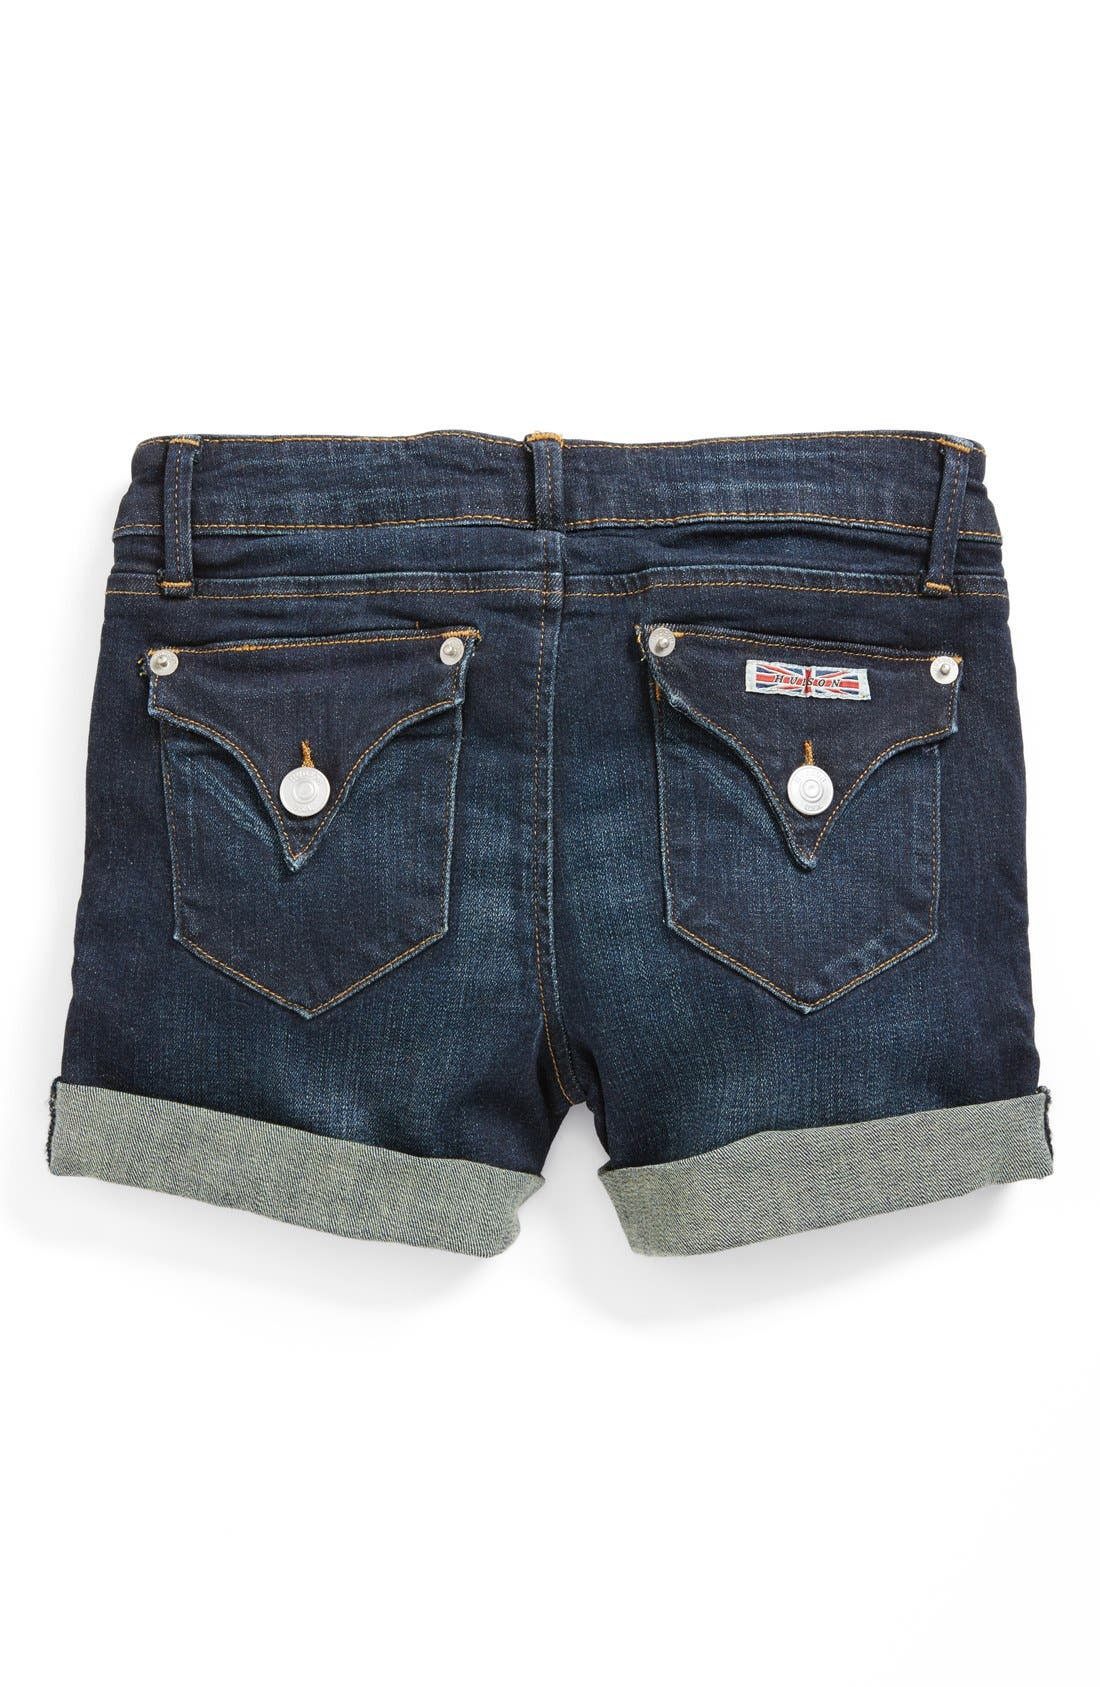 Alternate Image 1 Selected - Hudson Kids Roll Cuff Shorts (Little Girls)